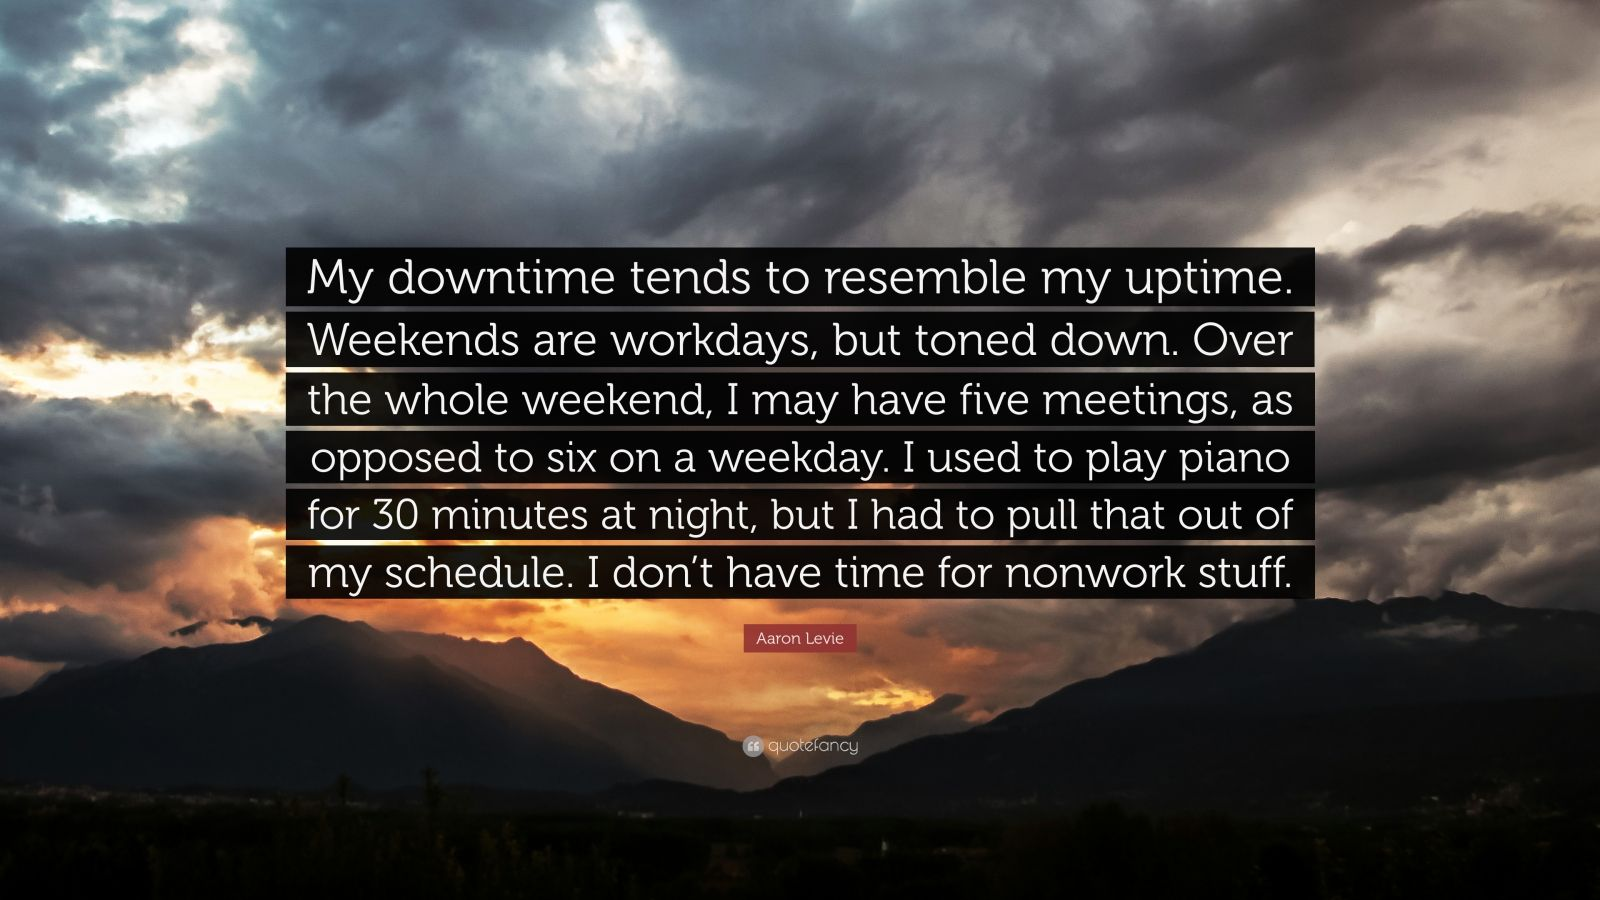 "Aaron Levie Quote: ""My downtime tends to resemble my uptime. Weekends are workdays, but toned down. Over the whole weekend, I may have five meetings, as opposed to six on a weekday. I used to play piano for 30 minutes at night, but I had to pull that out of my schedule. I don't have time for nonwork stuff."""